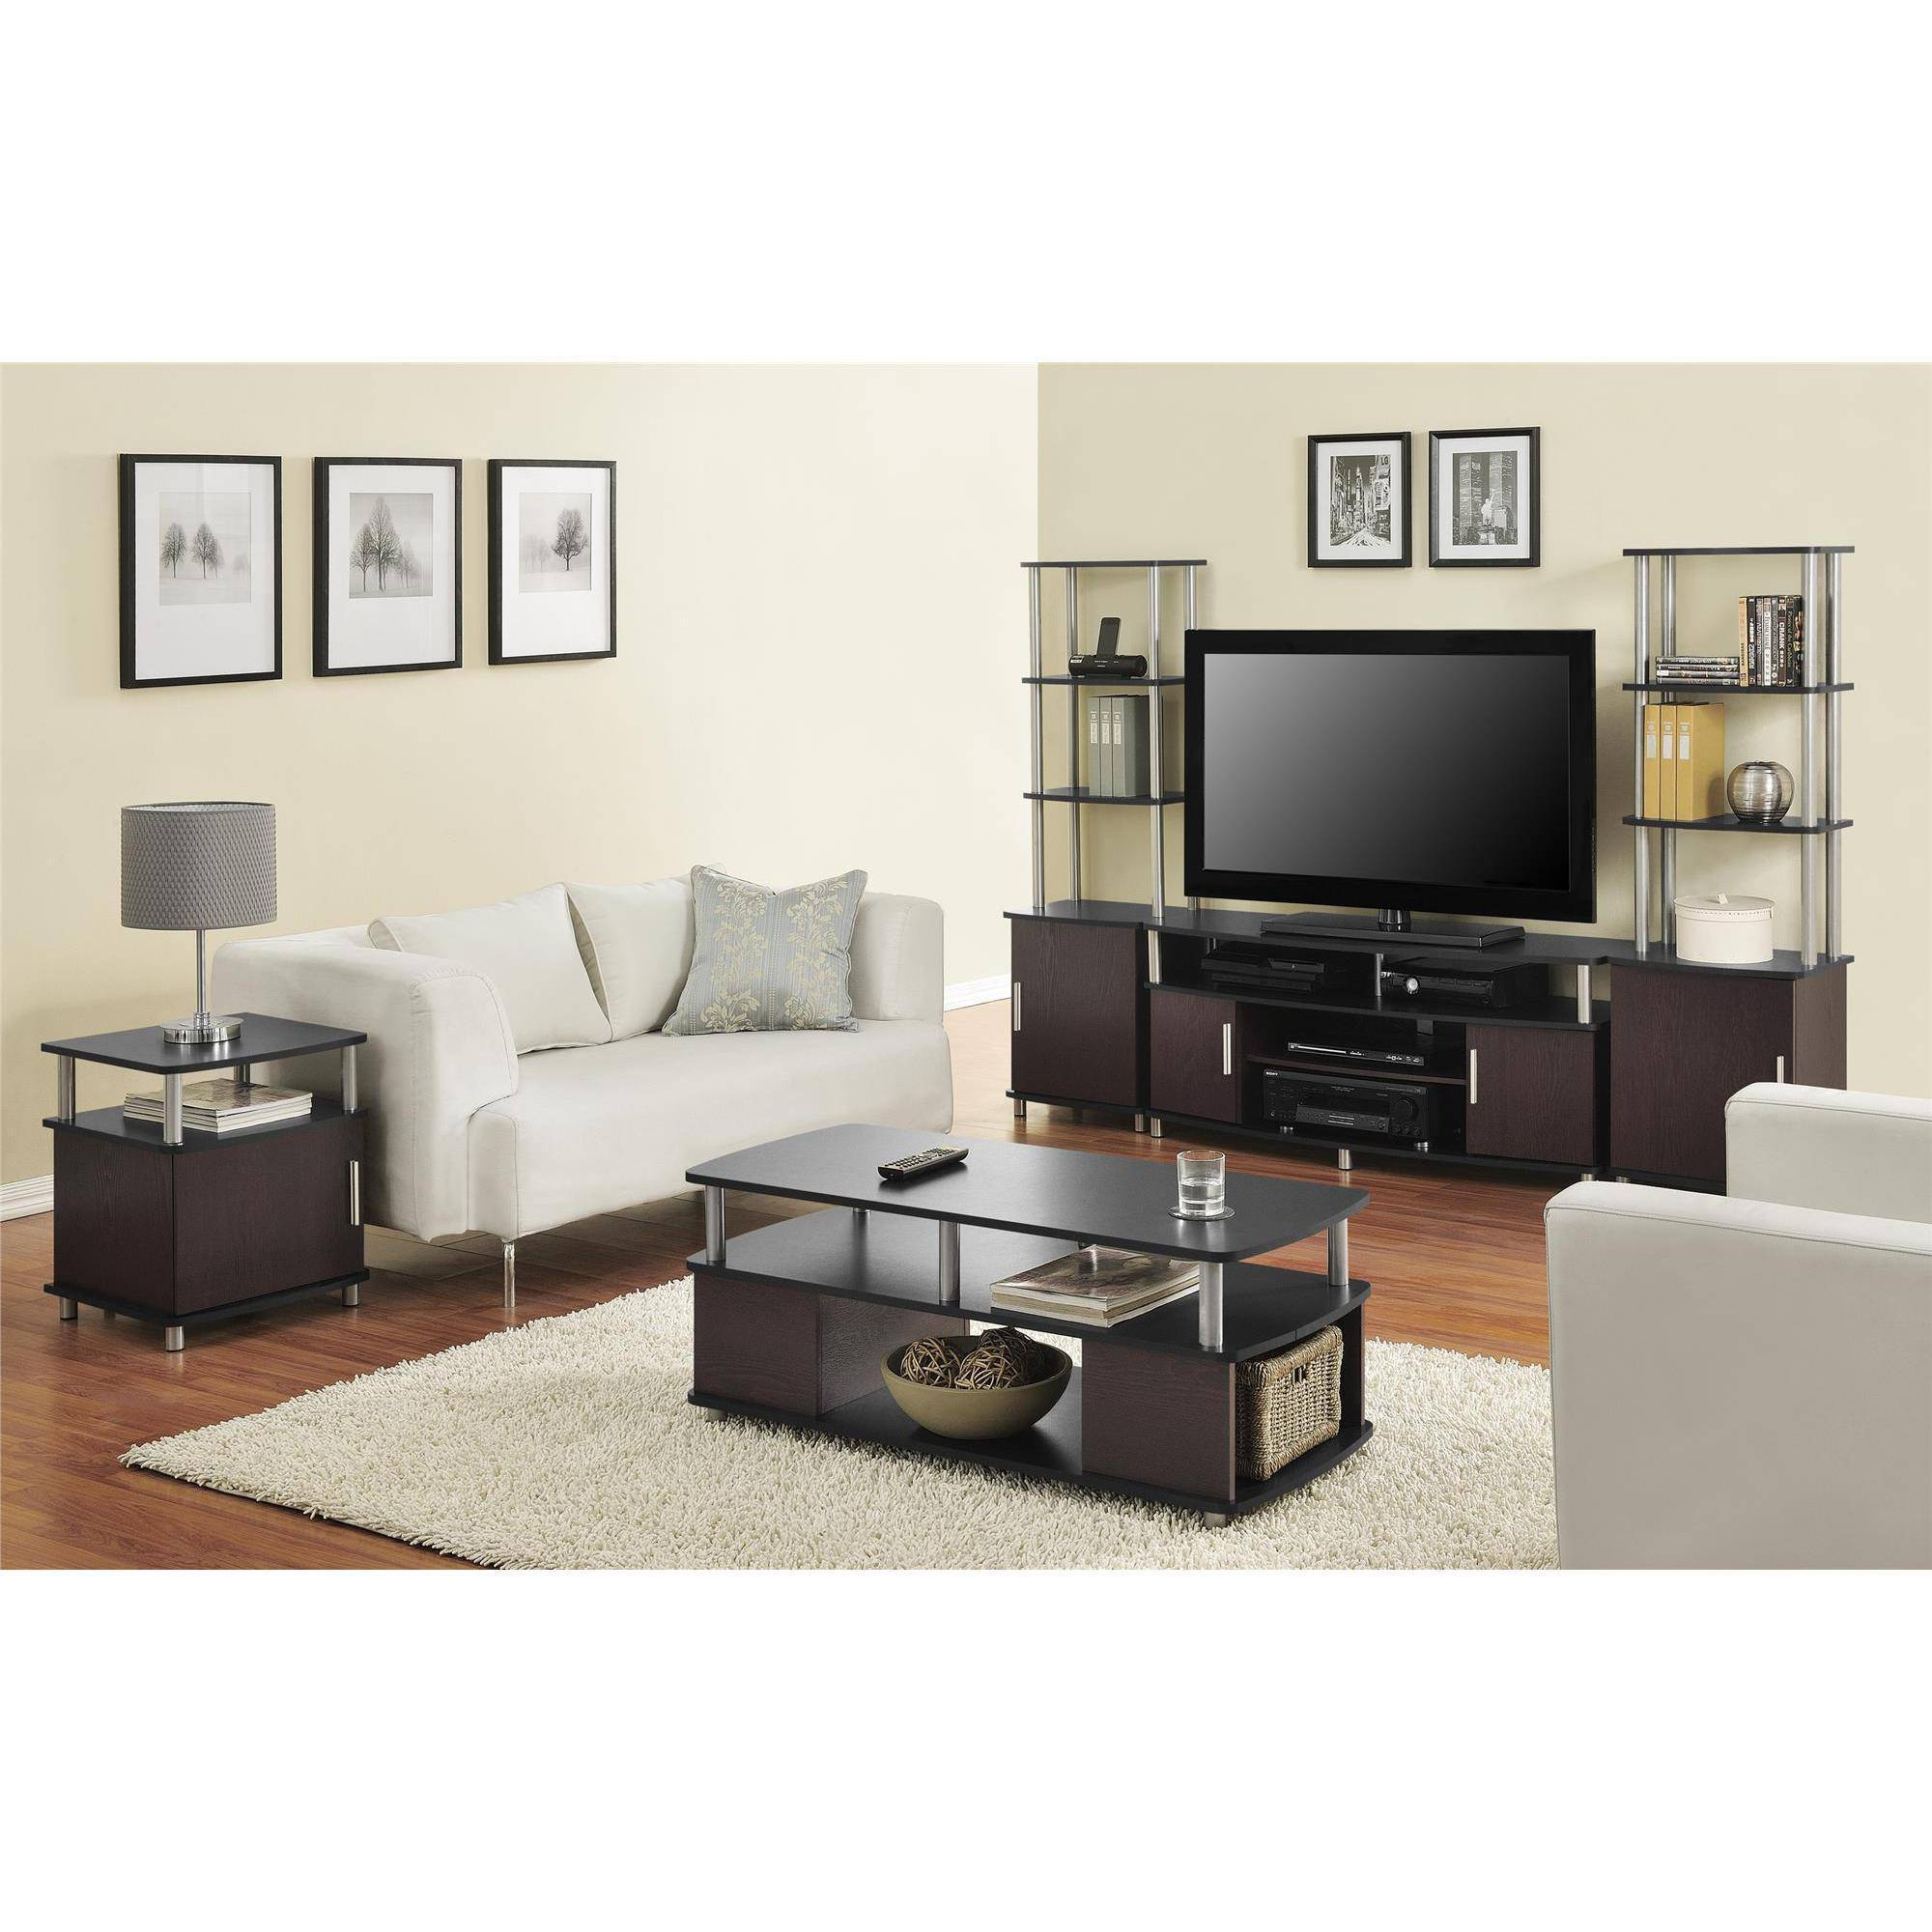 Matching Wooden Coffee Table And Tv Stand | Coffee Tables Decoration inside Matching Tv Unit And Coffee Tables (Image 24 of 30)